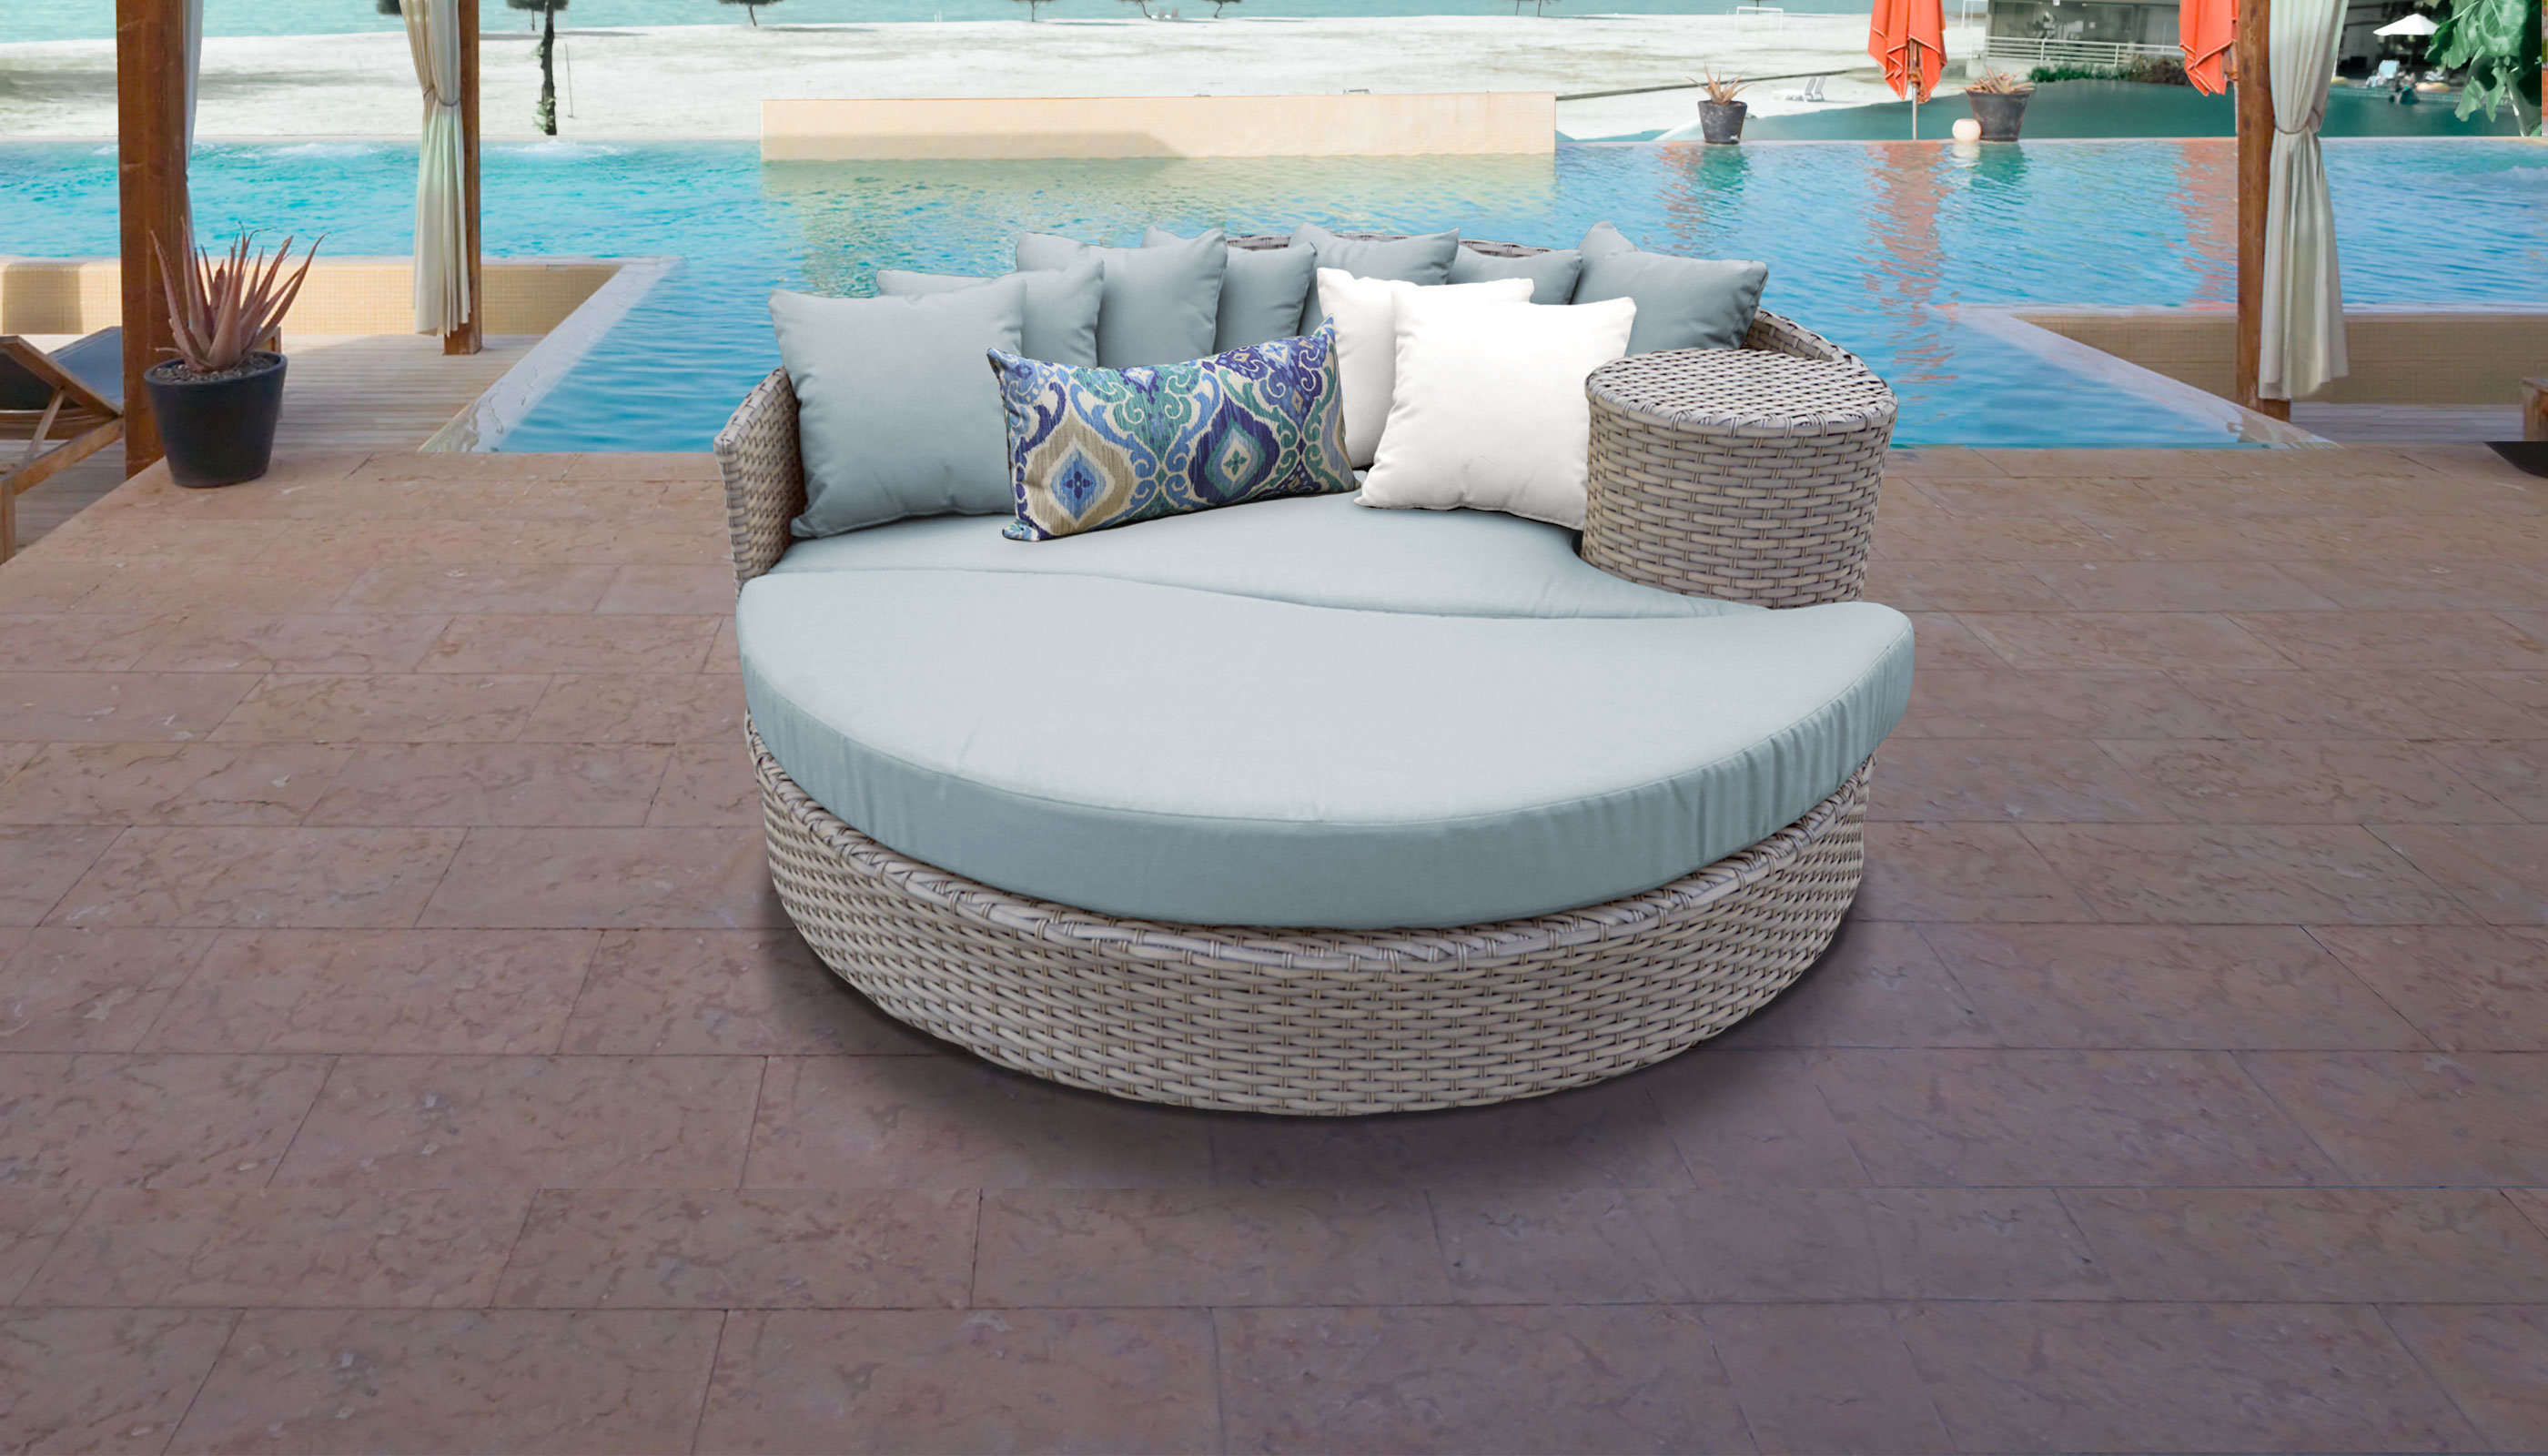 Greening Outdoor Daybeds With Ottoman & Cushions Pertaining To Preferred Rochford Circular Patio Daybed With Cushions (View 14 of 20)